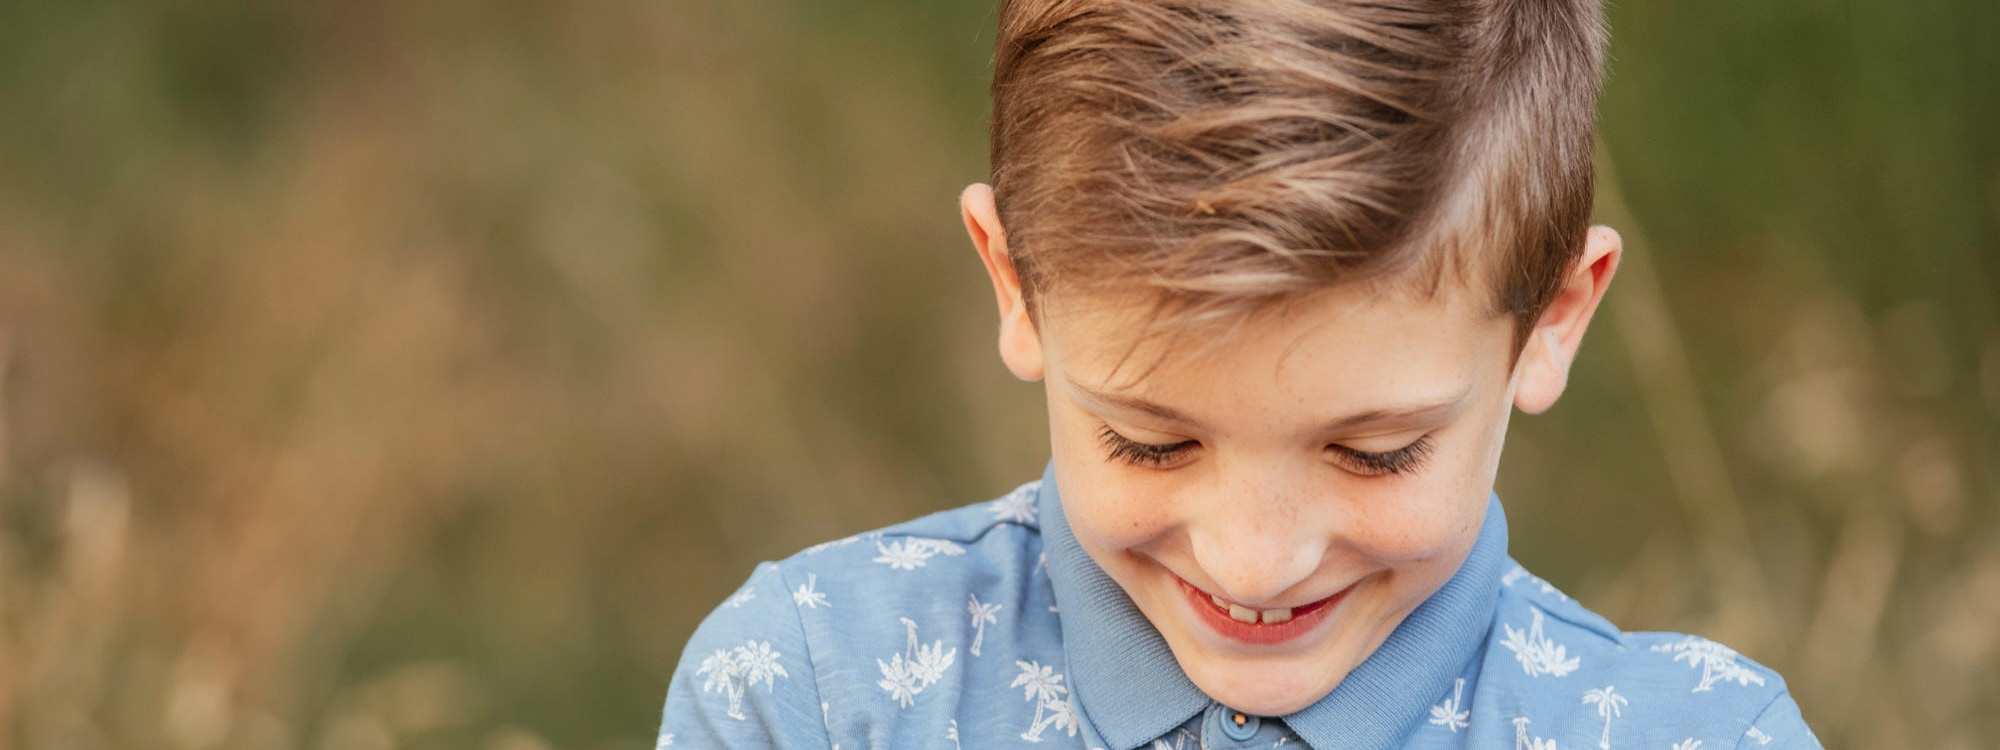 Boy Looking Down Smiling in Natural Family Photo Session Essex